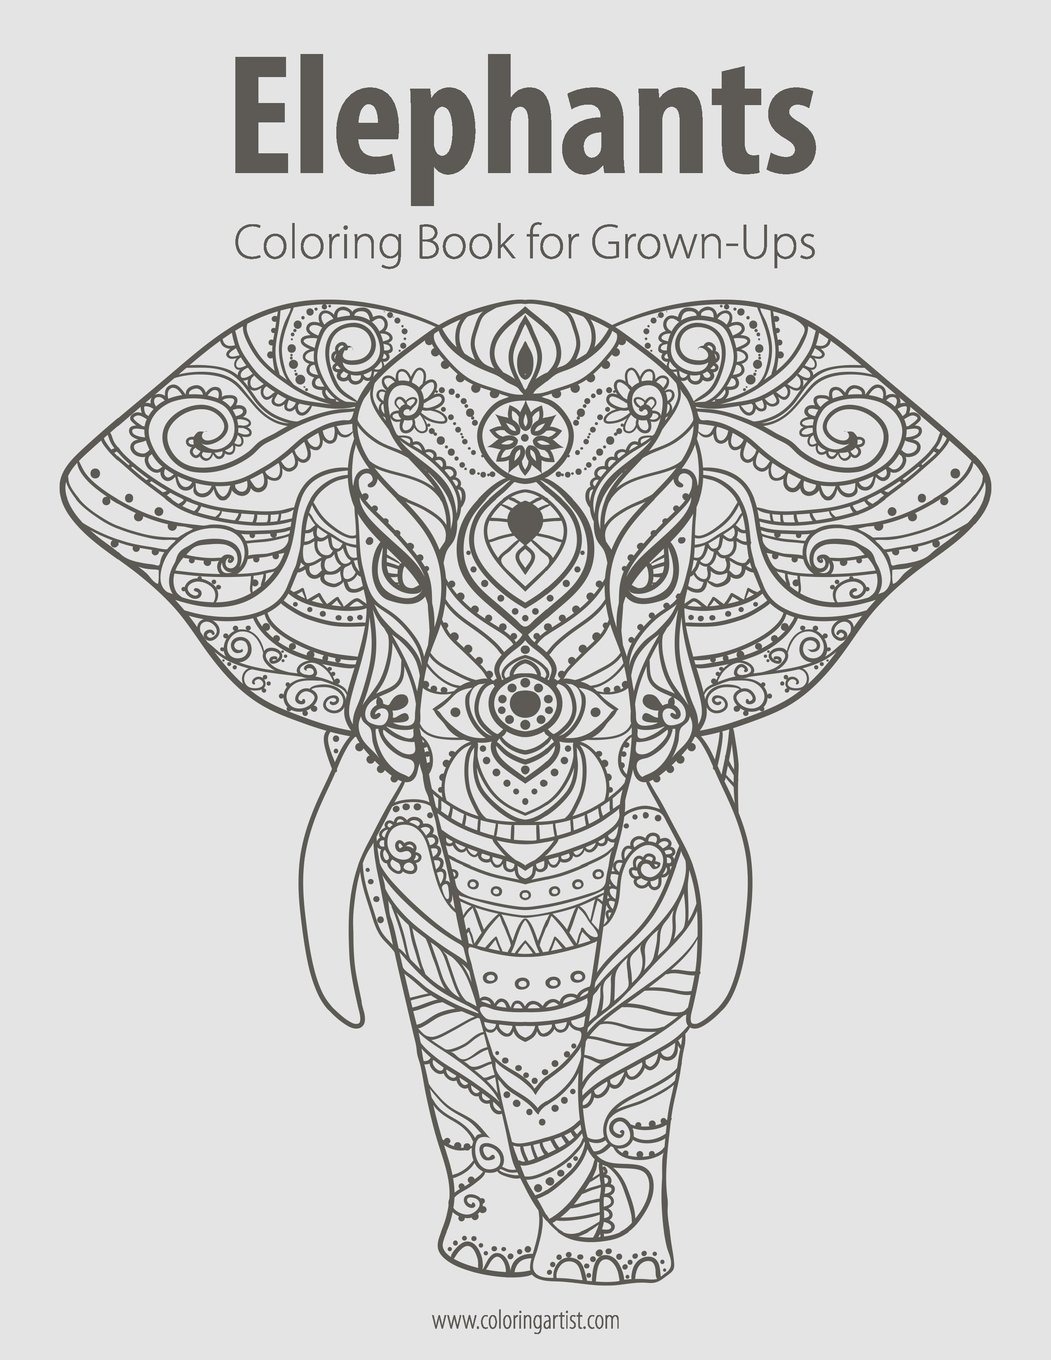 Coloring pictures elephant - Amazon Com Elephants Coloring Book For Grown Ups 1 Volume 1 9781518877865 Nick Snels Books